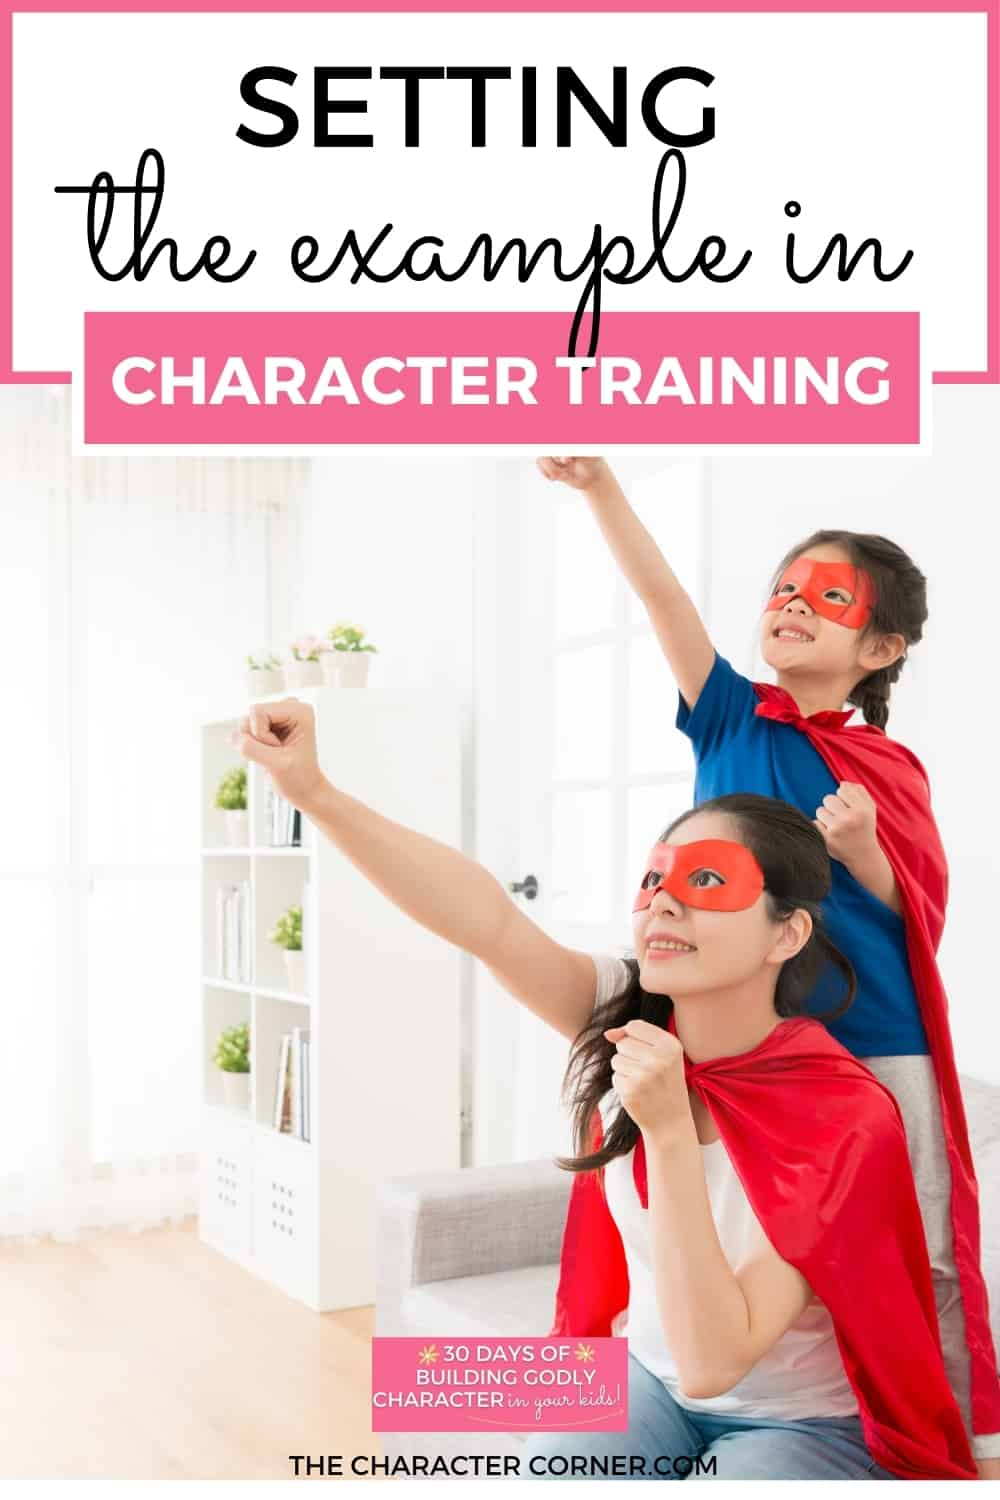 mom and daughter superhero pose text on image reads Setting the Example In Character Training